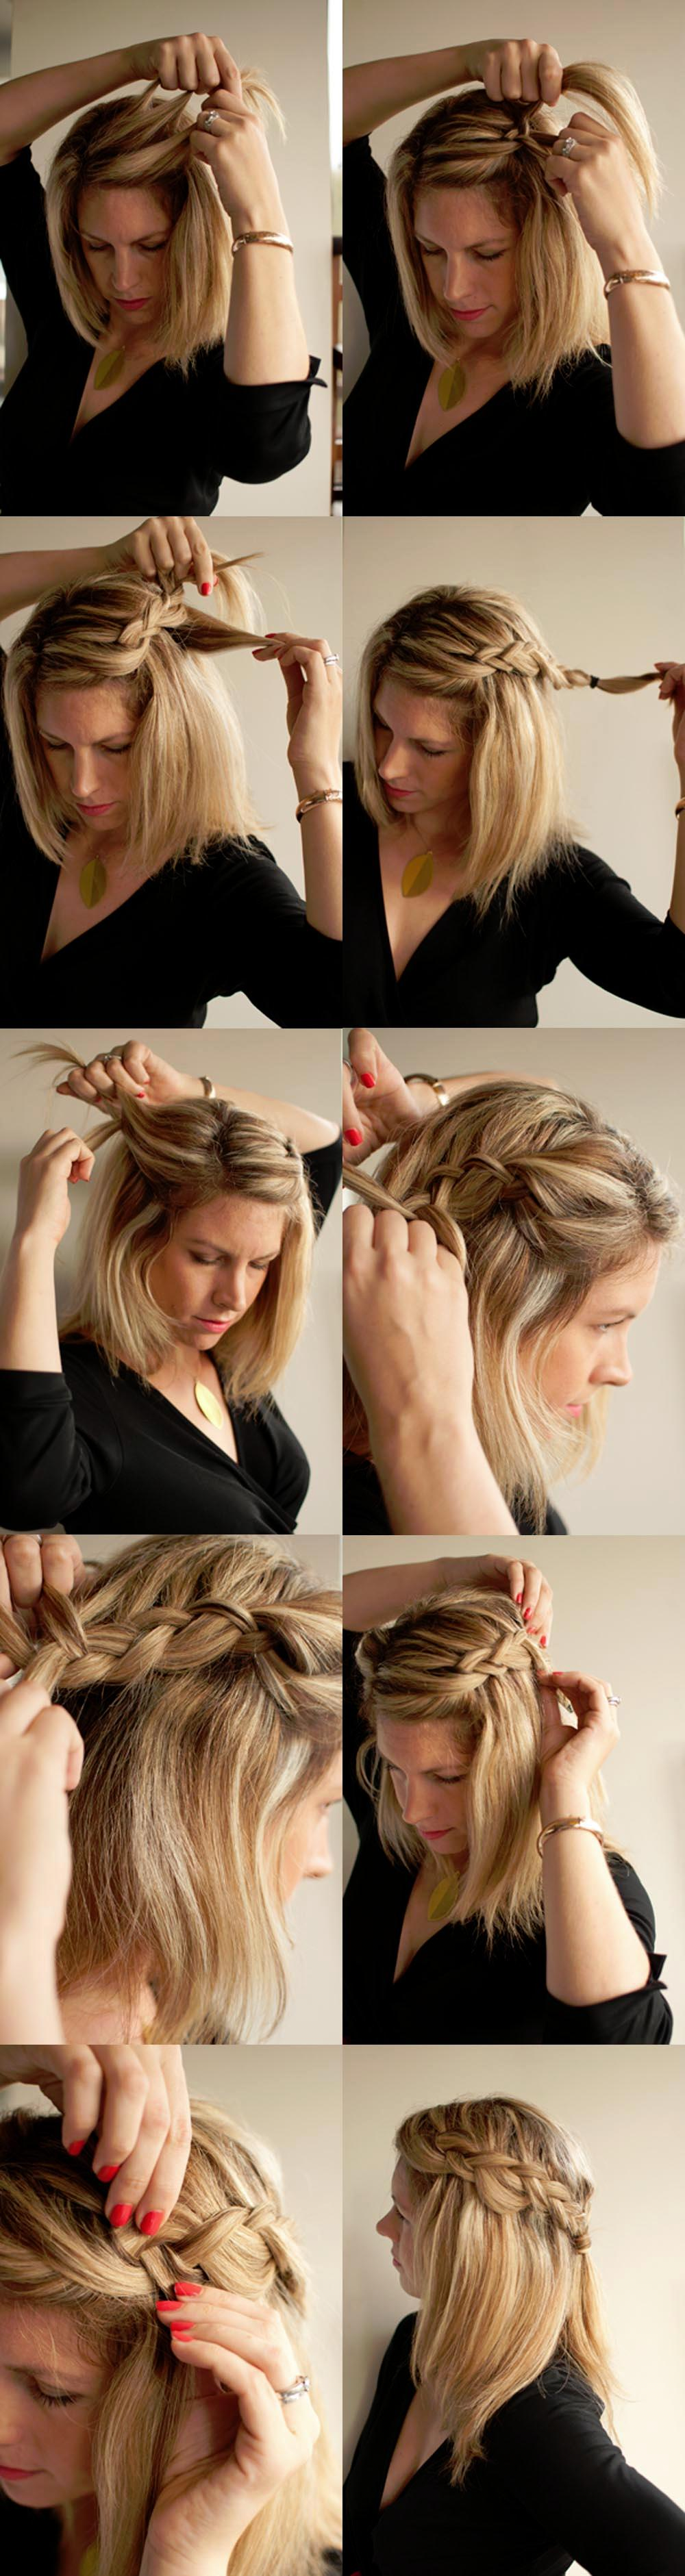 Easy Side Braid Hairstyles for Medium Hair